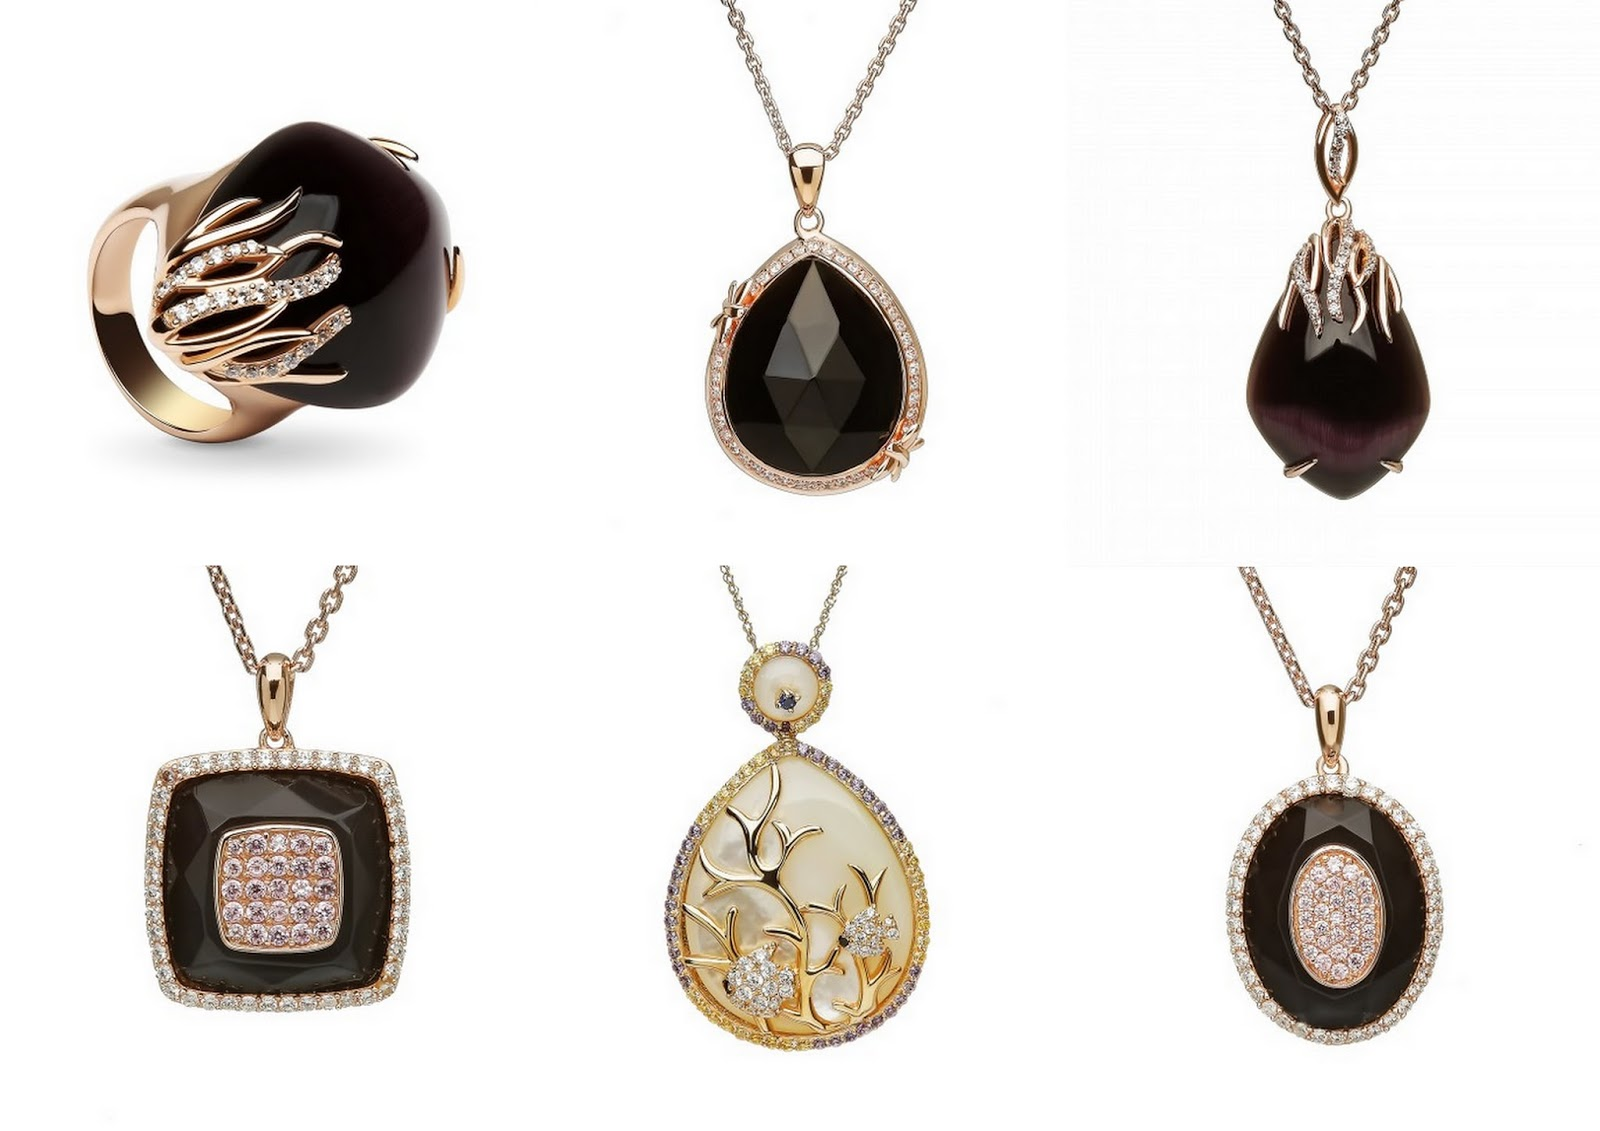 Affordable Jewellery from Lauryn Rose!